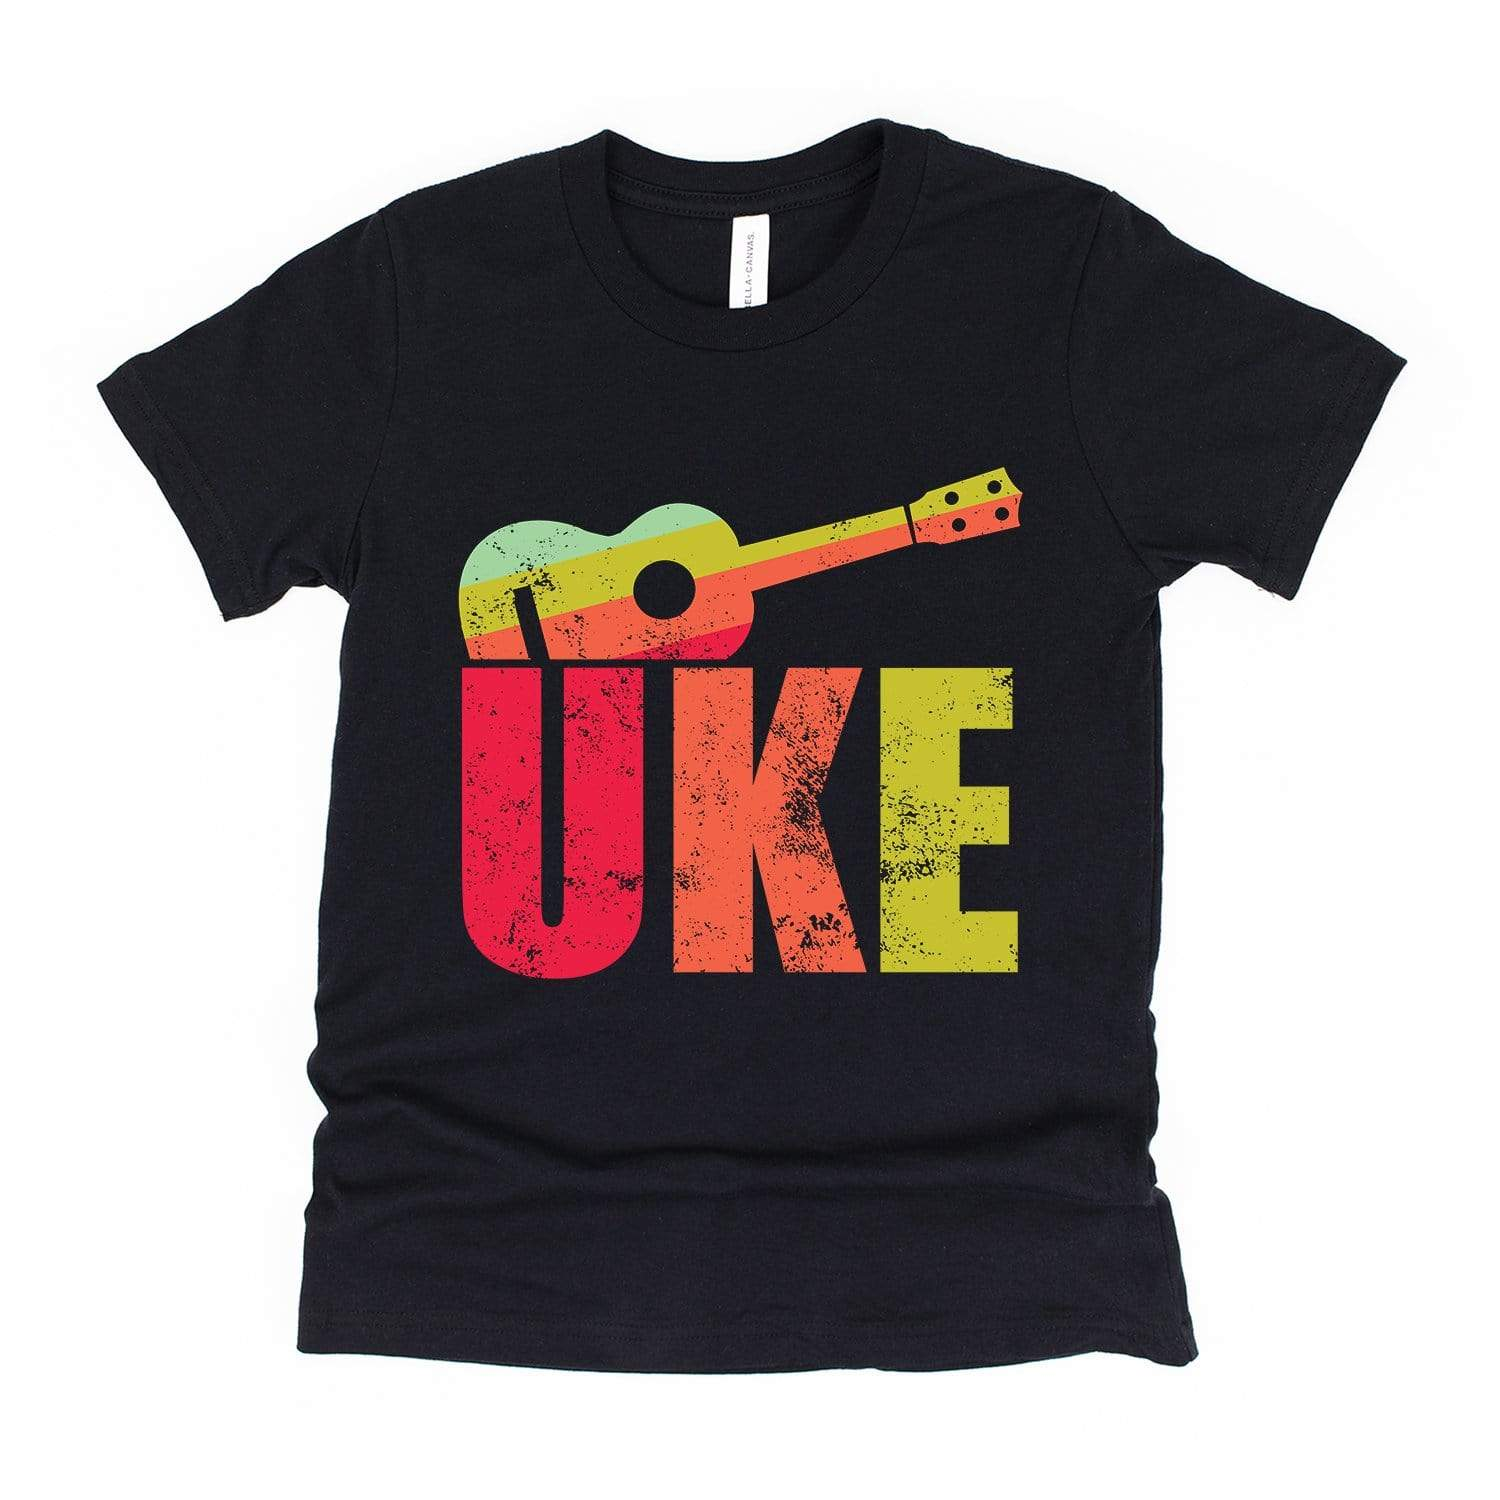 www.UkuleleTees.com Shirts Kids Distressed Big UKE Youth Unisex T-Shirt